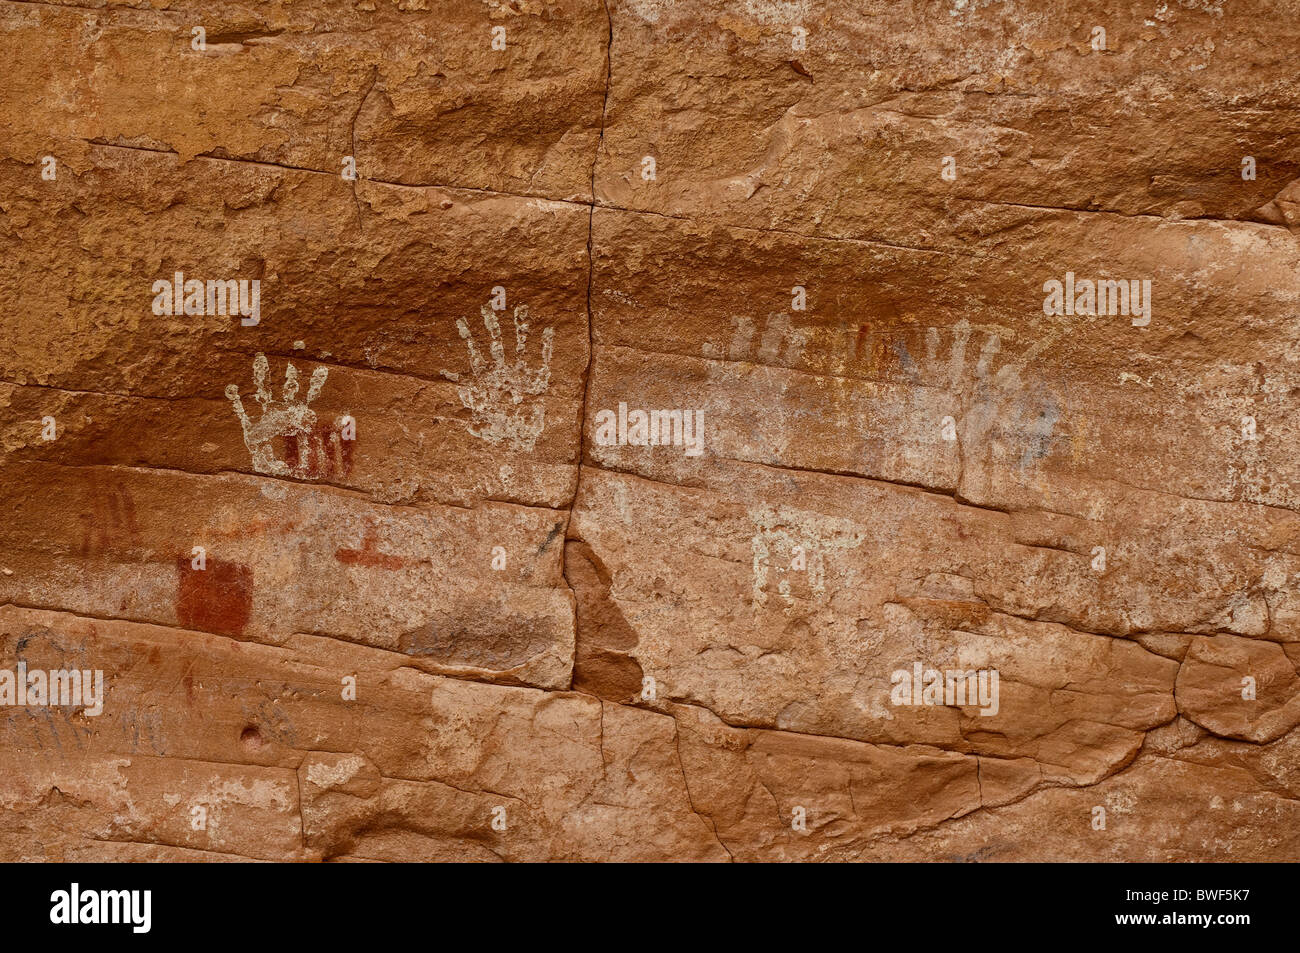 About 1500 year old palm prints and drawings of Native Americans, Mystery Valley, Arizona, USA - Stock Image